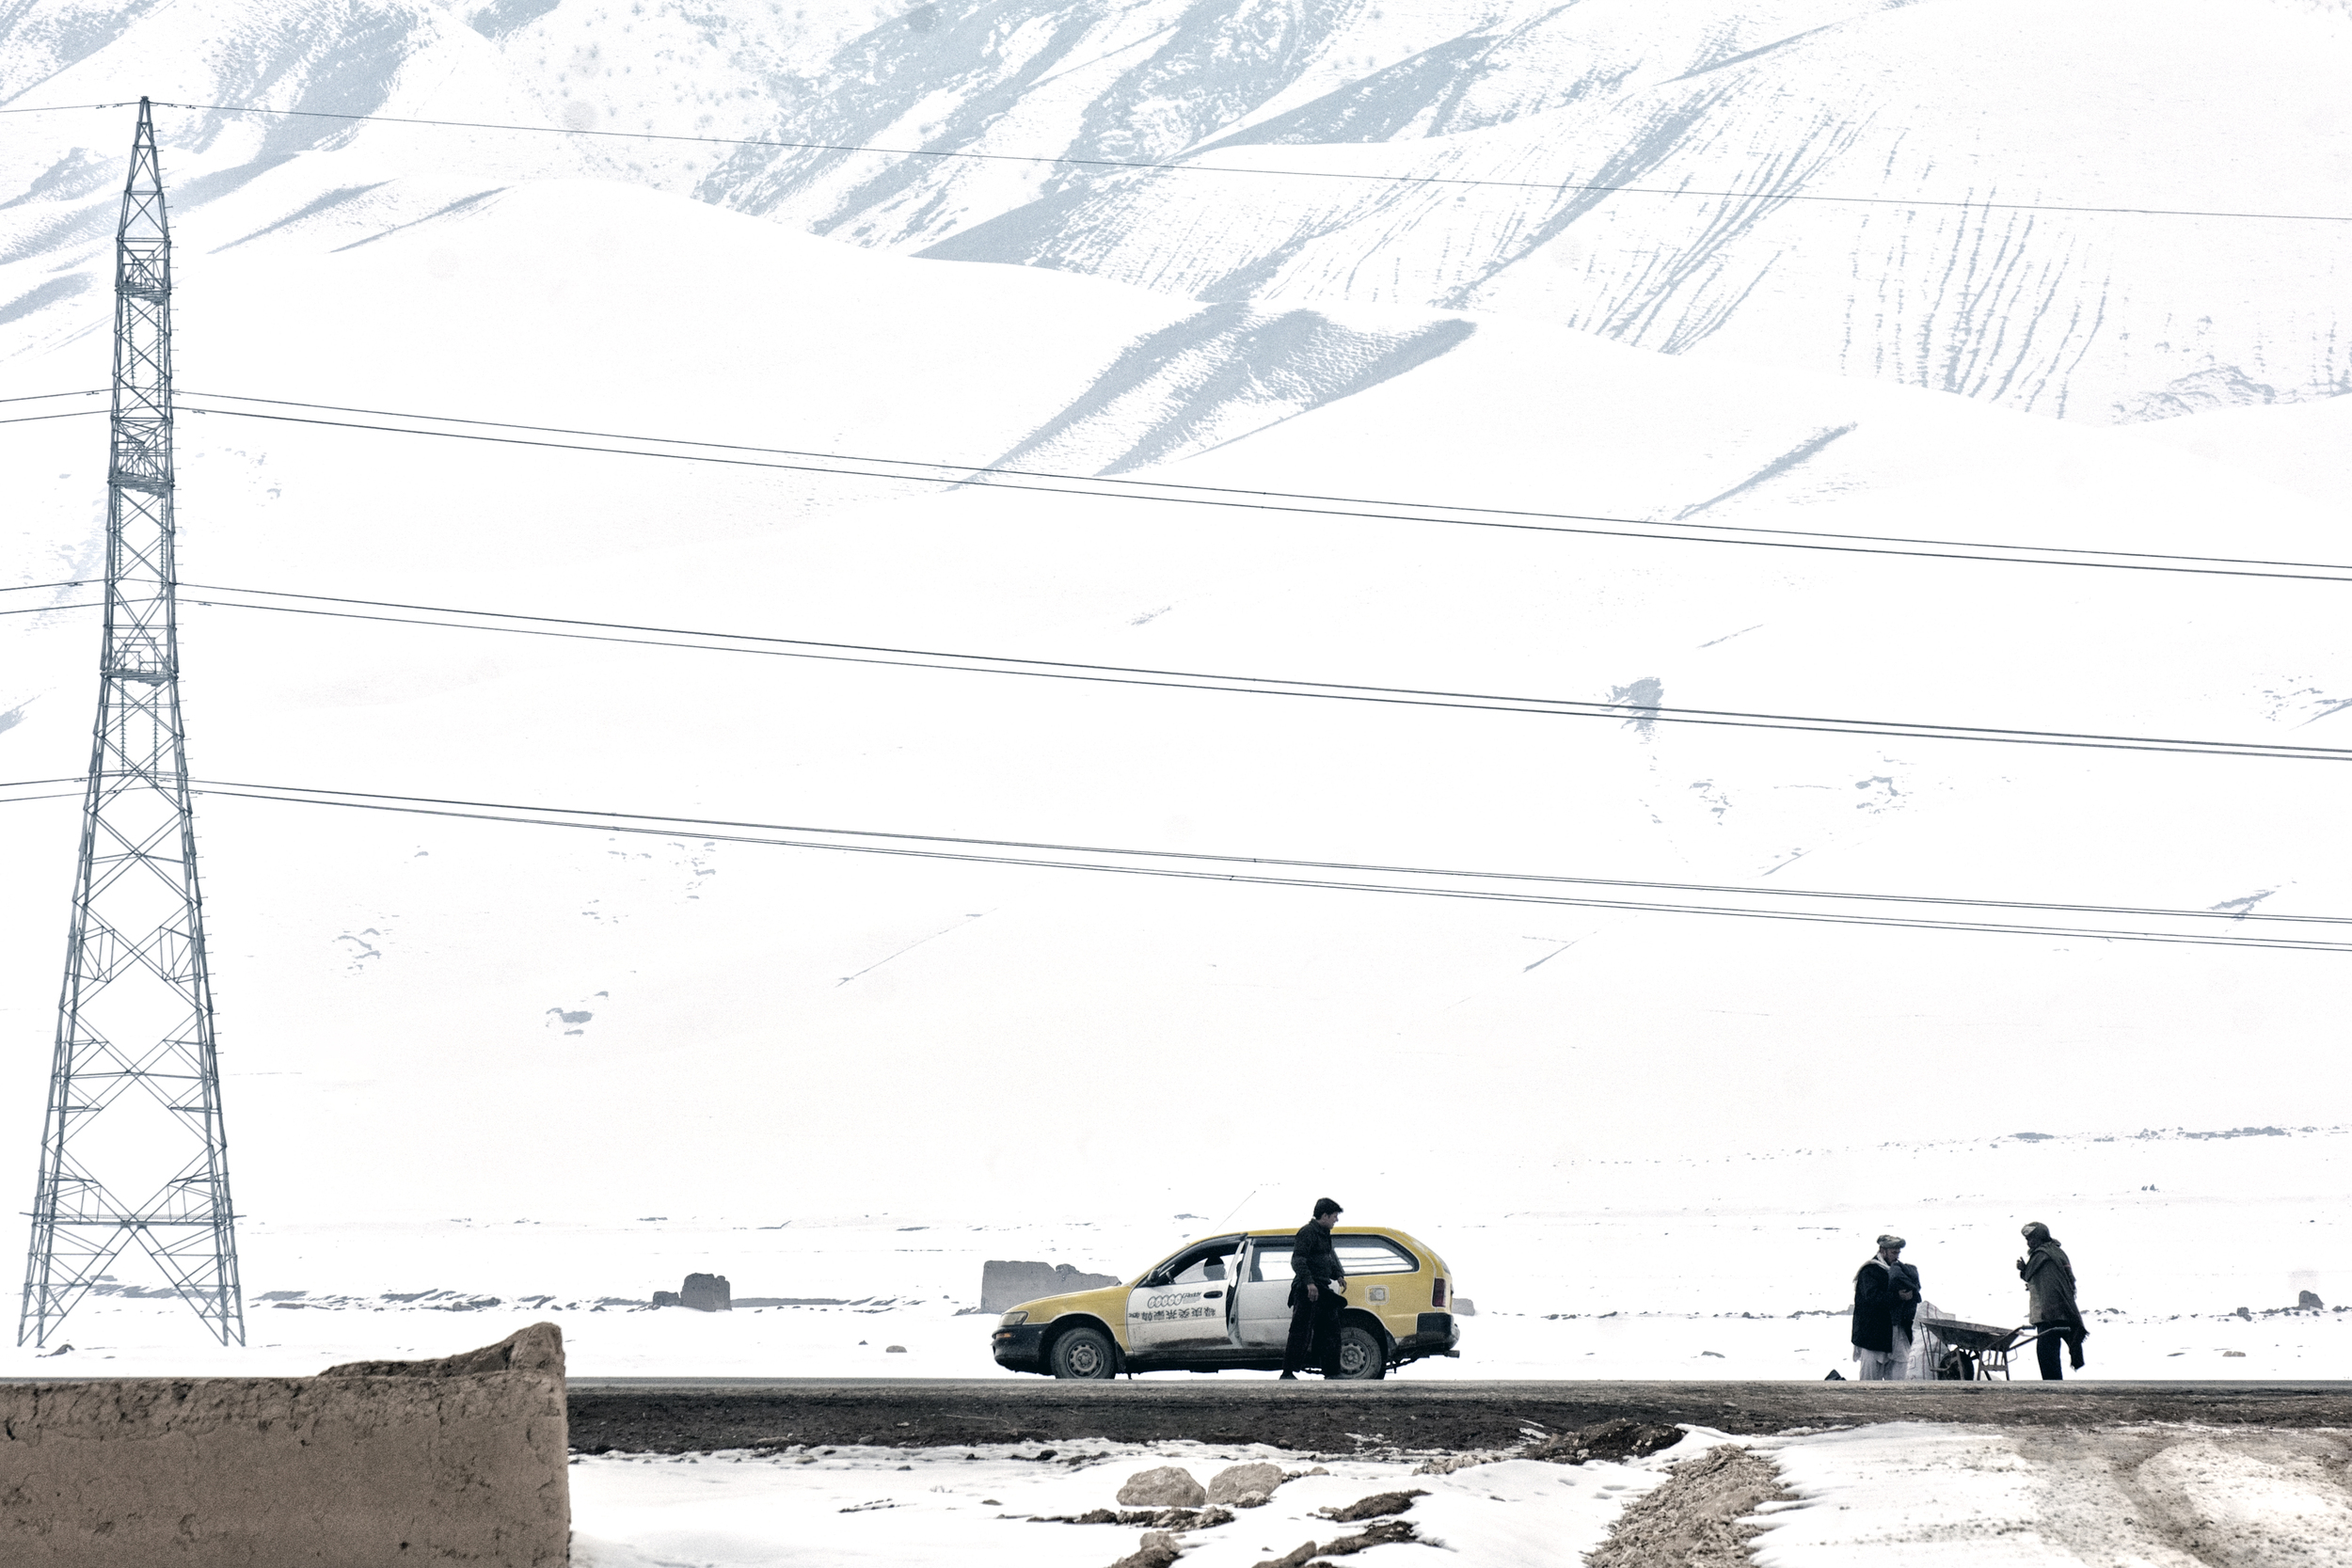 Cars wait outside a displacement camp near  Pul i Khumri , Baghlan Province, Afghanistan, February 13, 2008. (Photo/Mark Pearson)